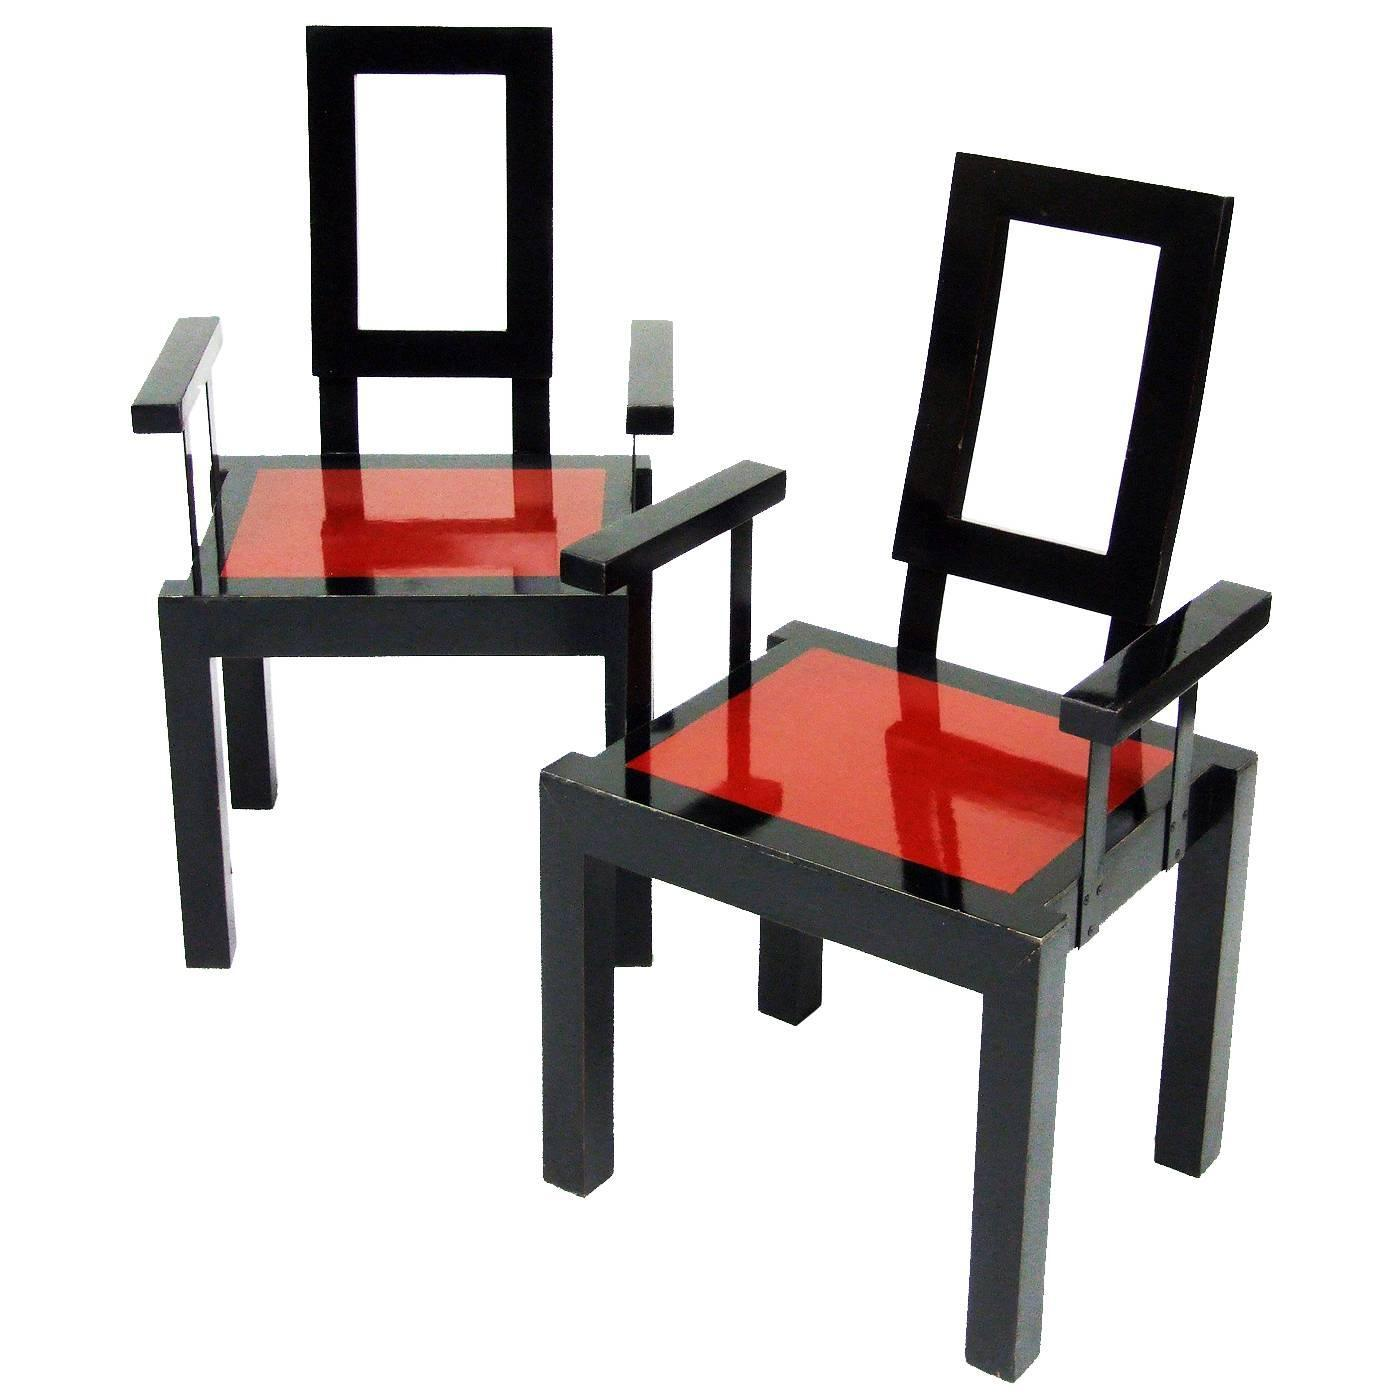 1980s Furniture 1980s italian postmodernist memphis style chairs for sale at 1stdibs